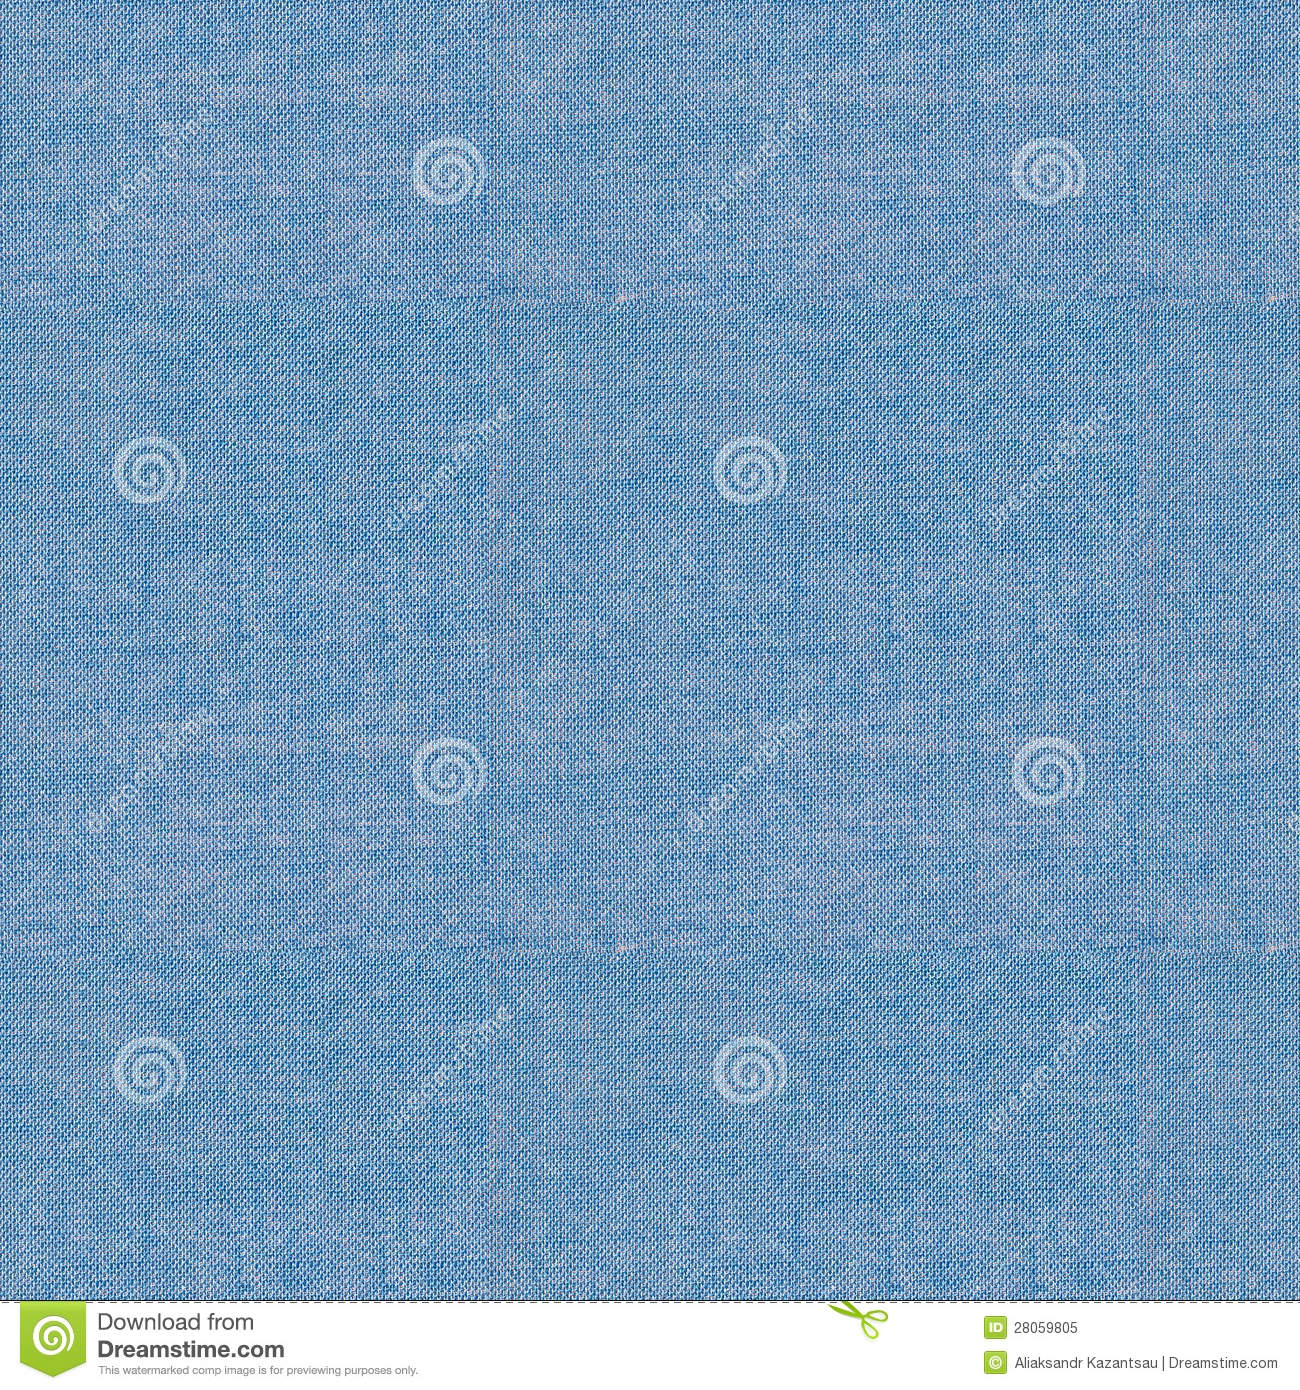 Blue Book Cover Texture : Seamless textured blue textile book cover royalty free